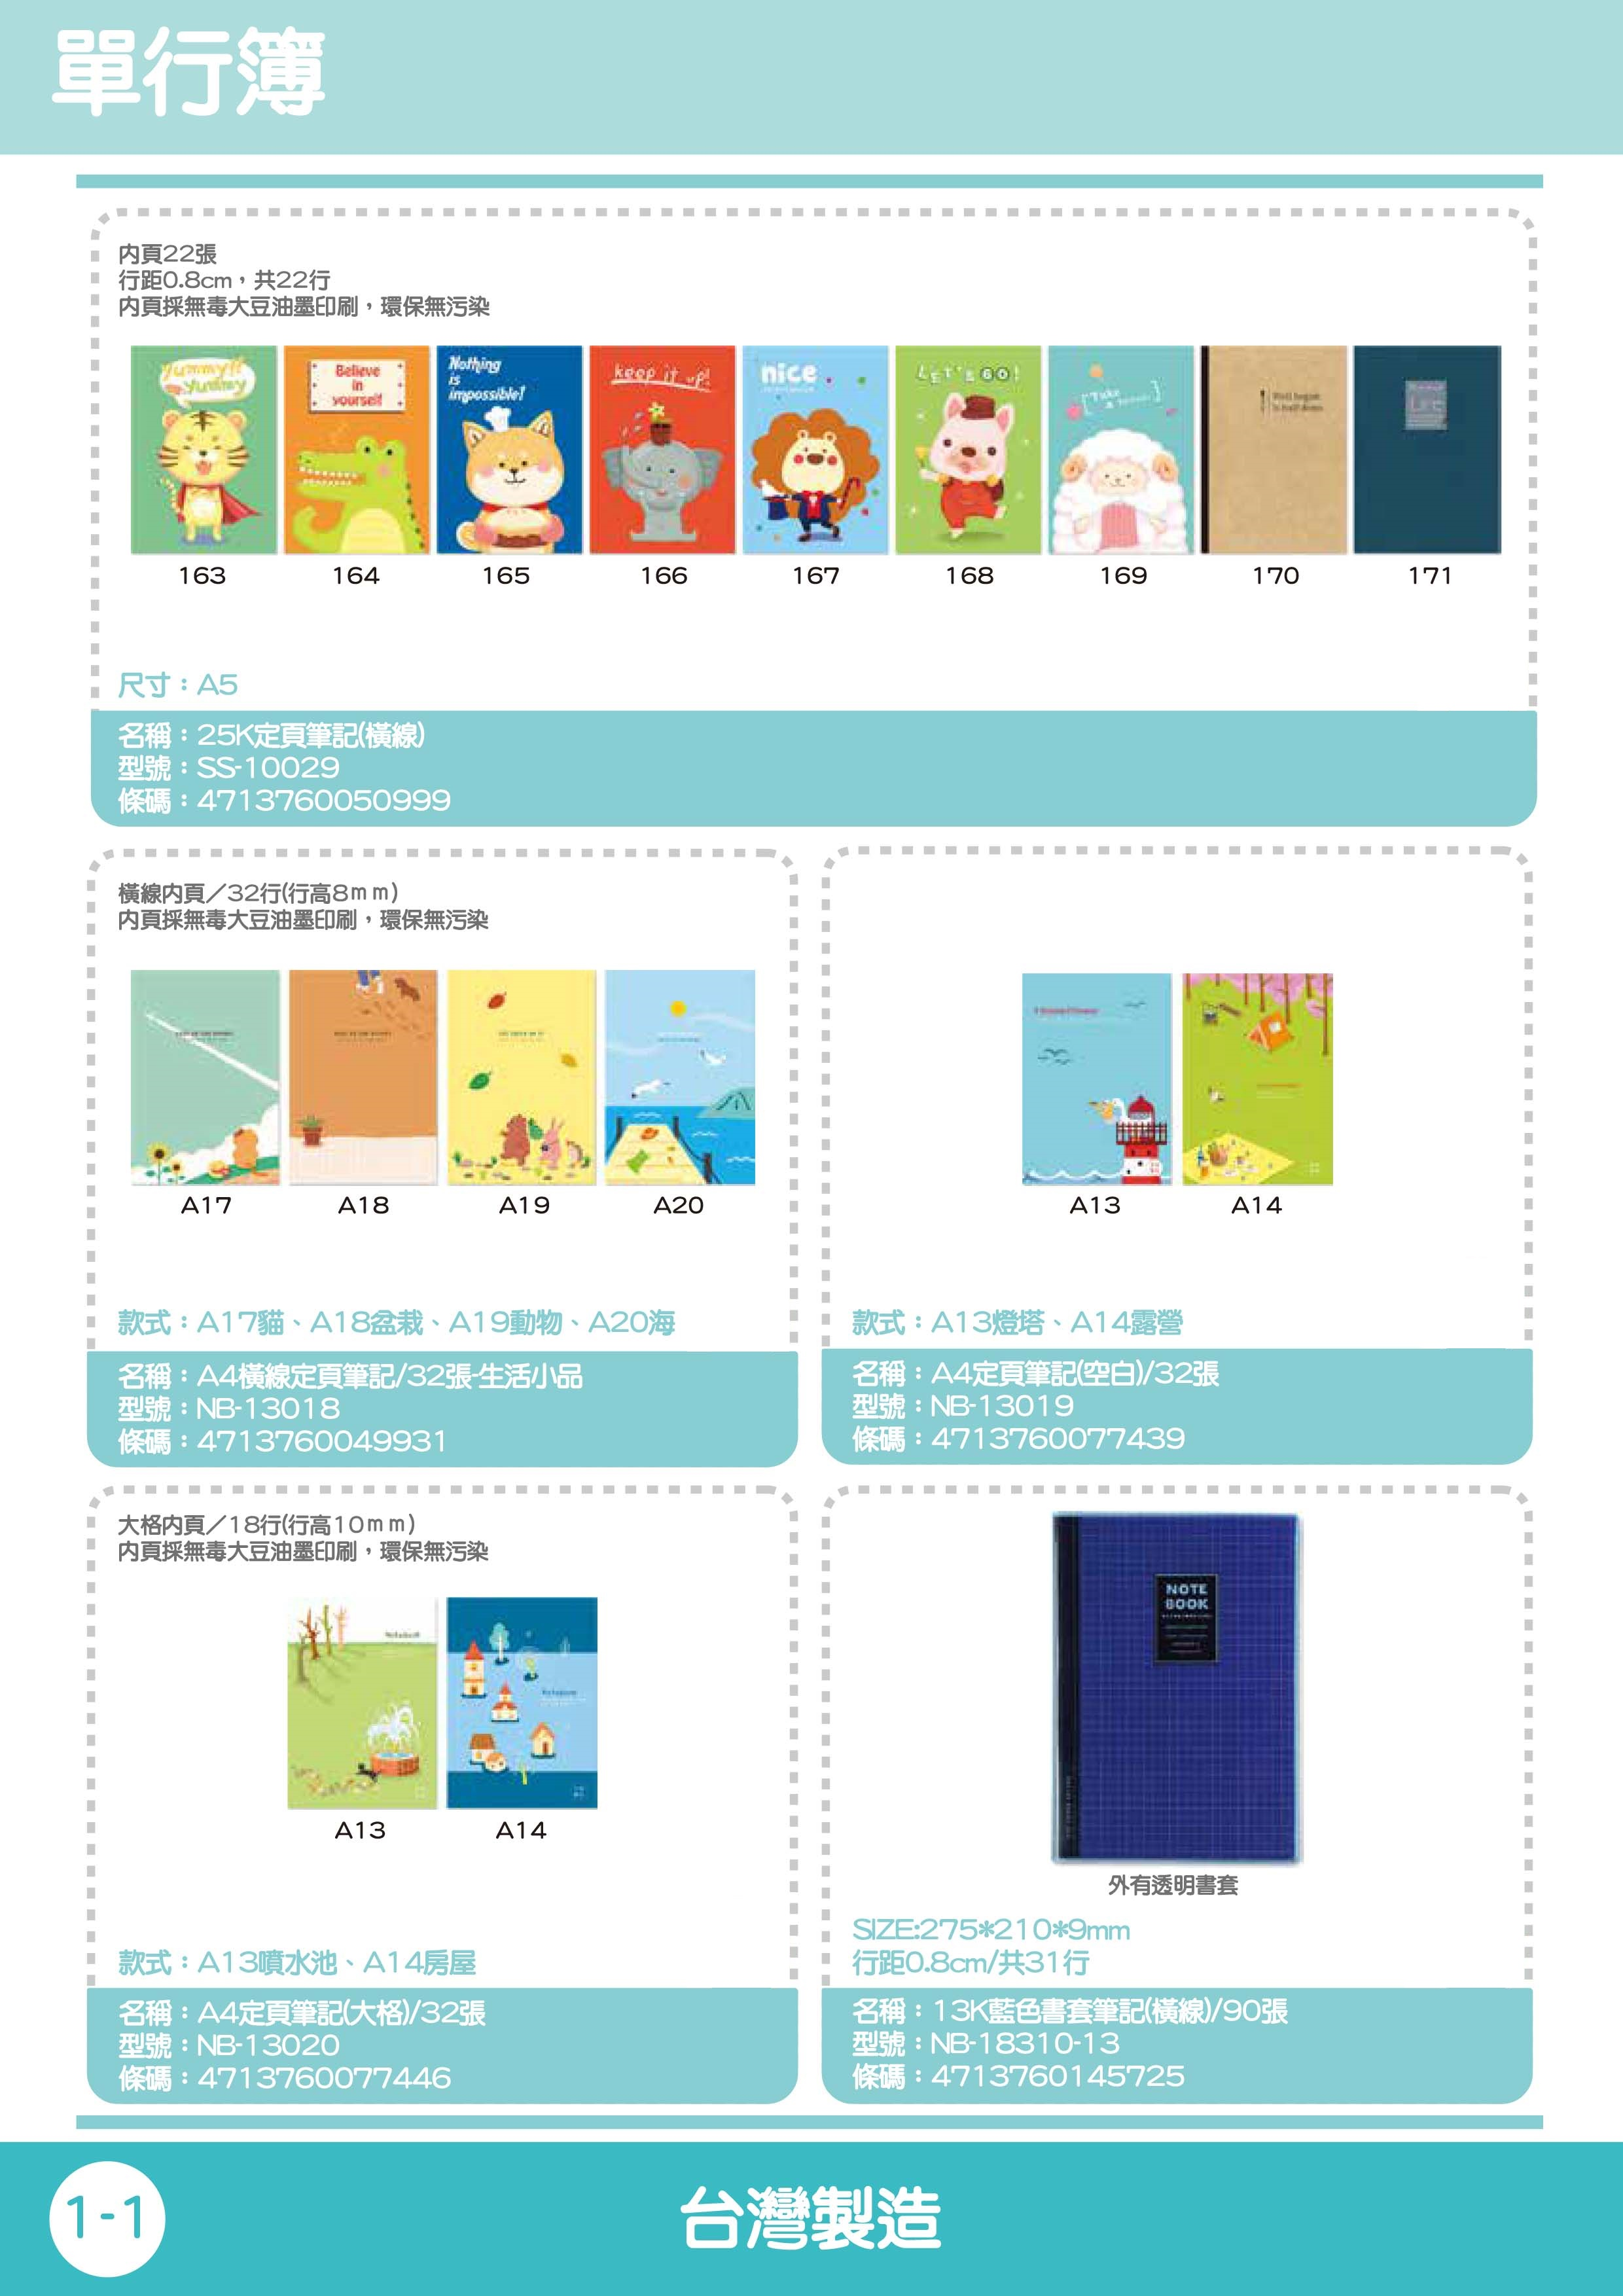 stationery-notebook-si-11.jpg